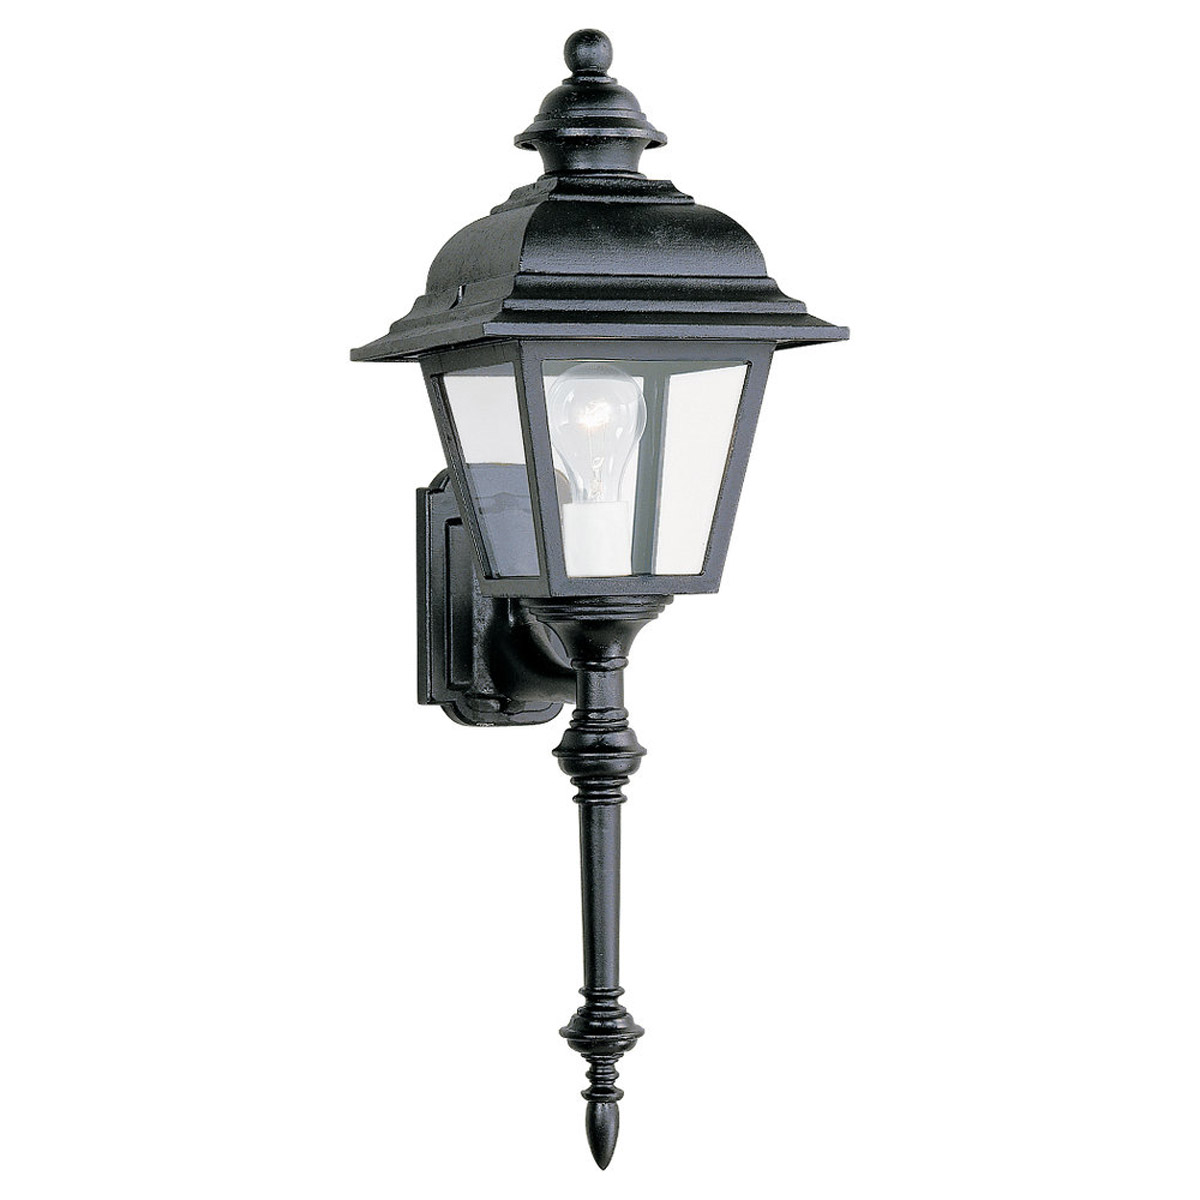 Sea Gull Lighting Bancroft 1 Light Outdoor Wall Lantern in Black 8814-12 photo